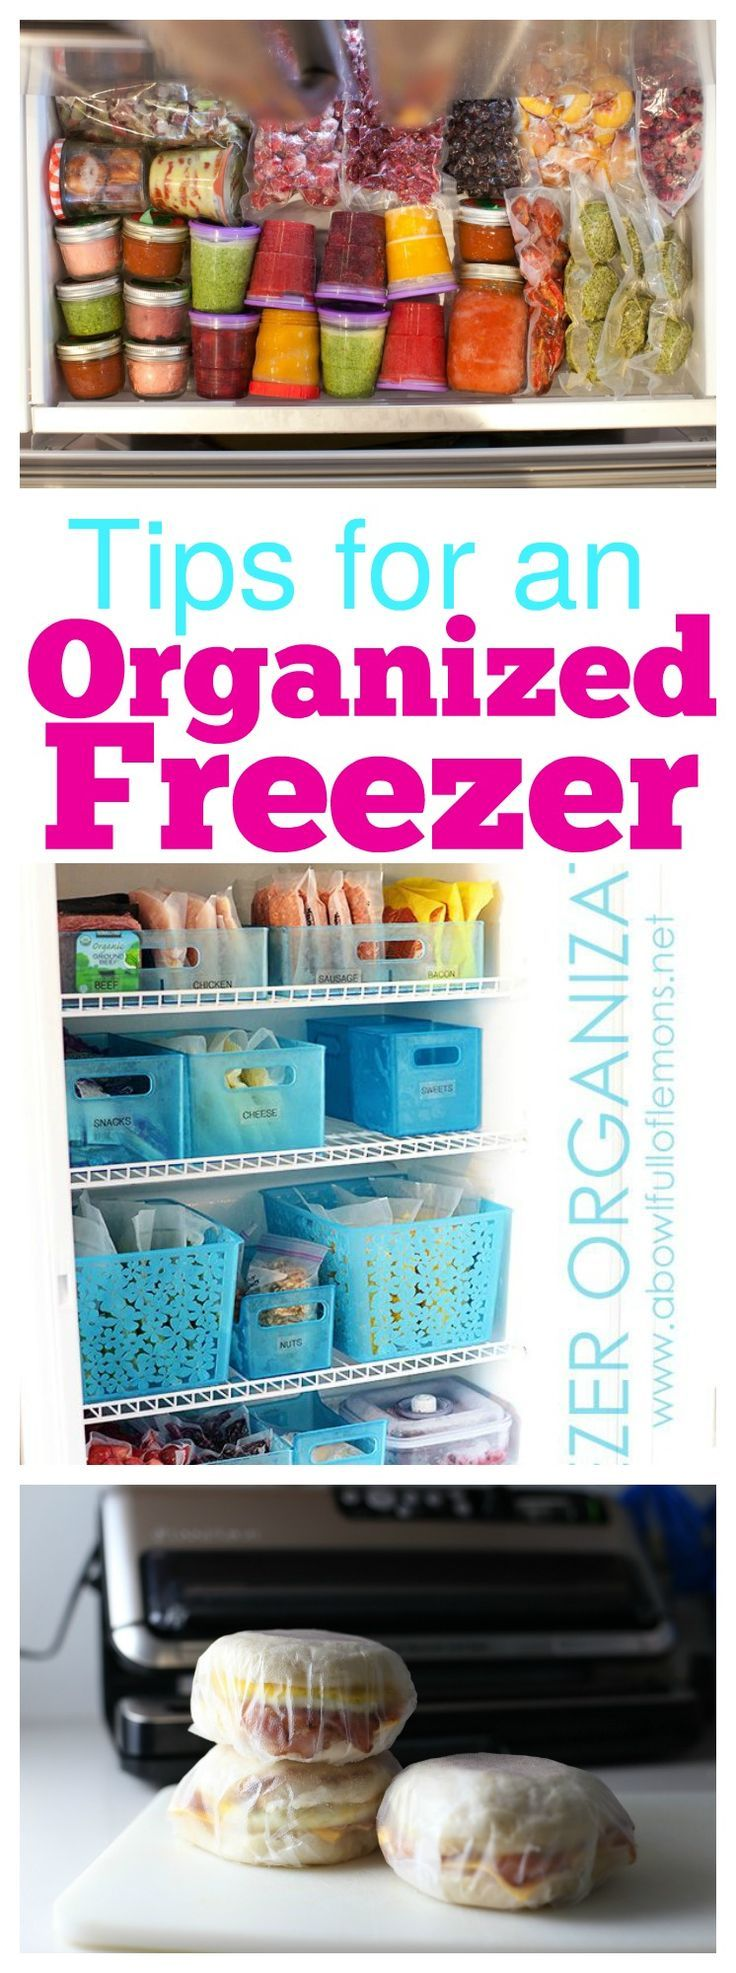 Tips For an Organized Freezer - tips and products you need to have the perfectly organized freezer that you've always dreamed of!